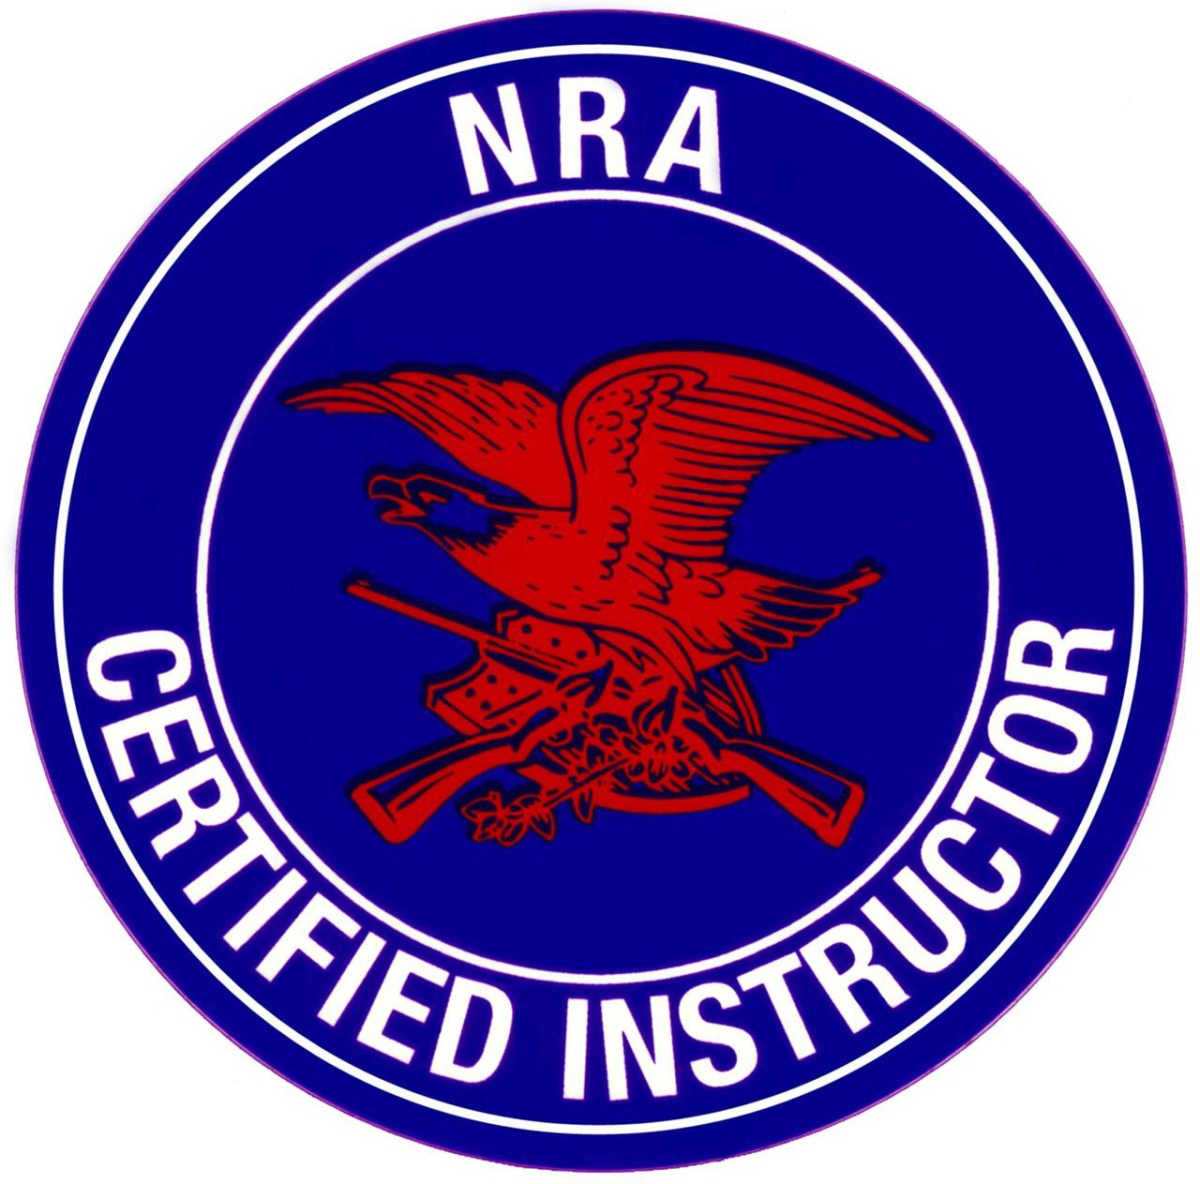 Protect Your Freedom - West Shore Sportsmen's Association  Nra Logo